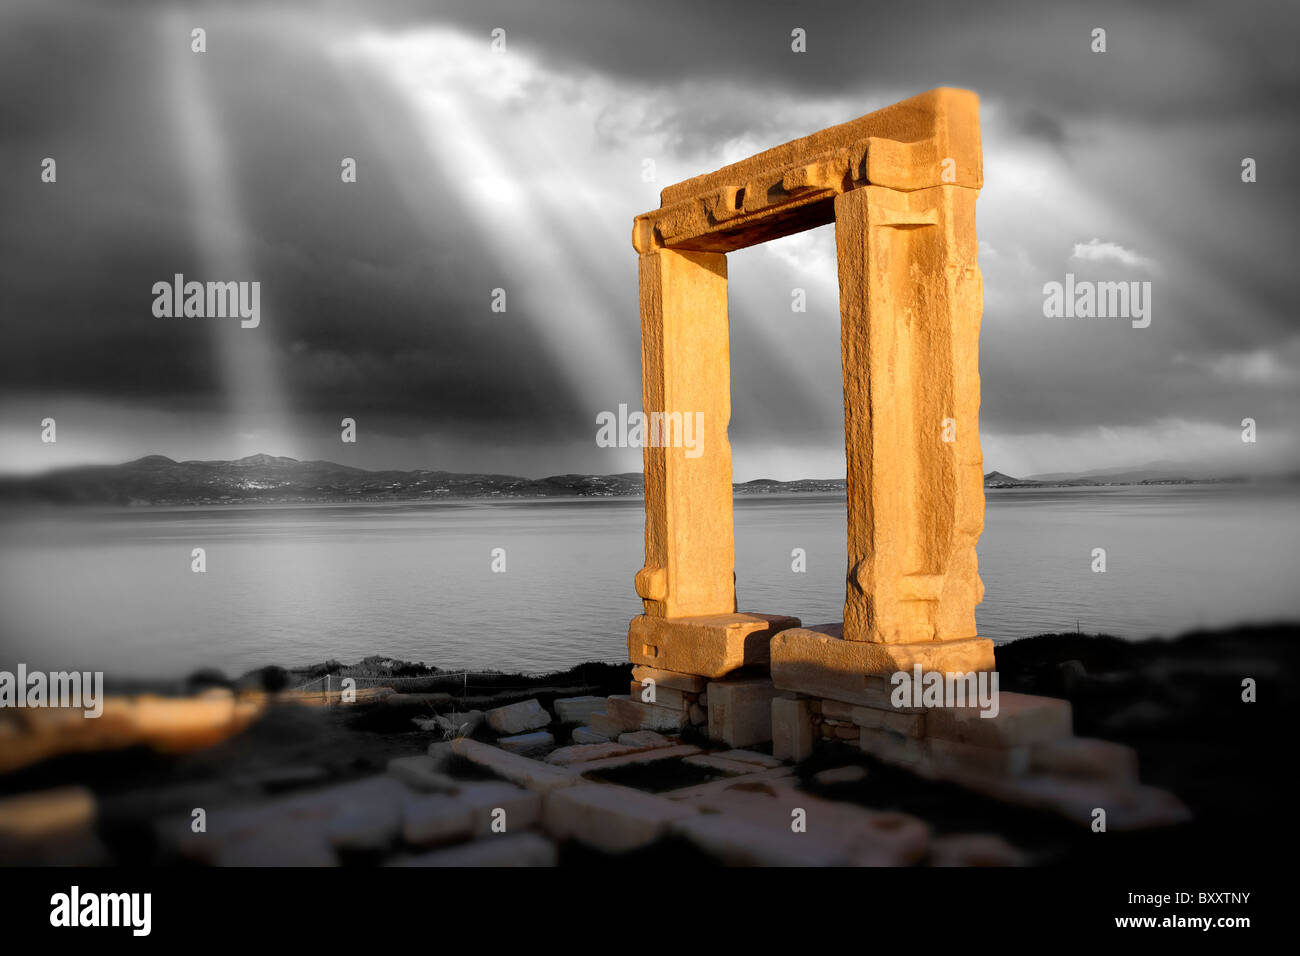 Doorway of the ruins of the Temple of Apollo. Naxos, Greek Cyclades Islands. - Stock Image